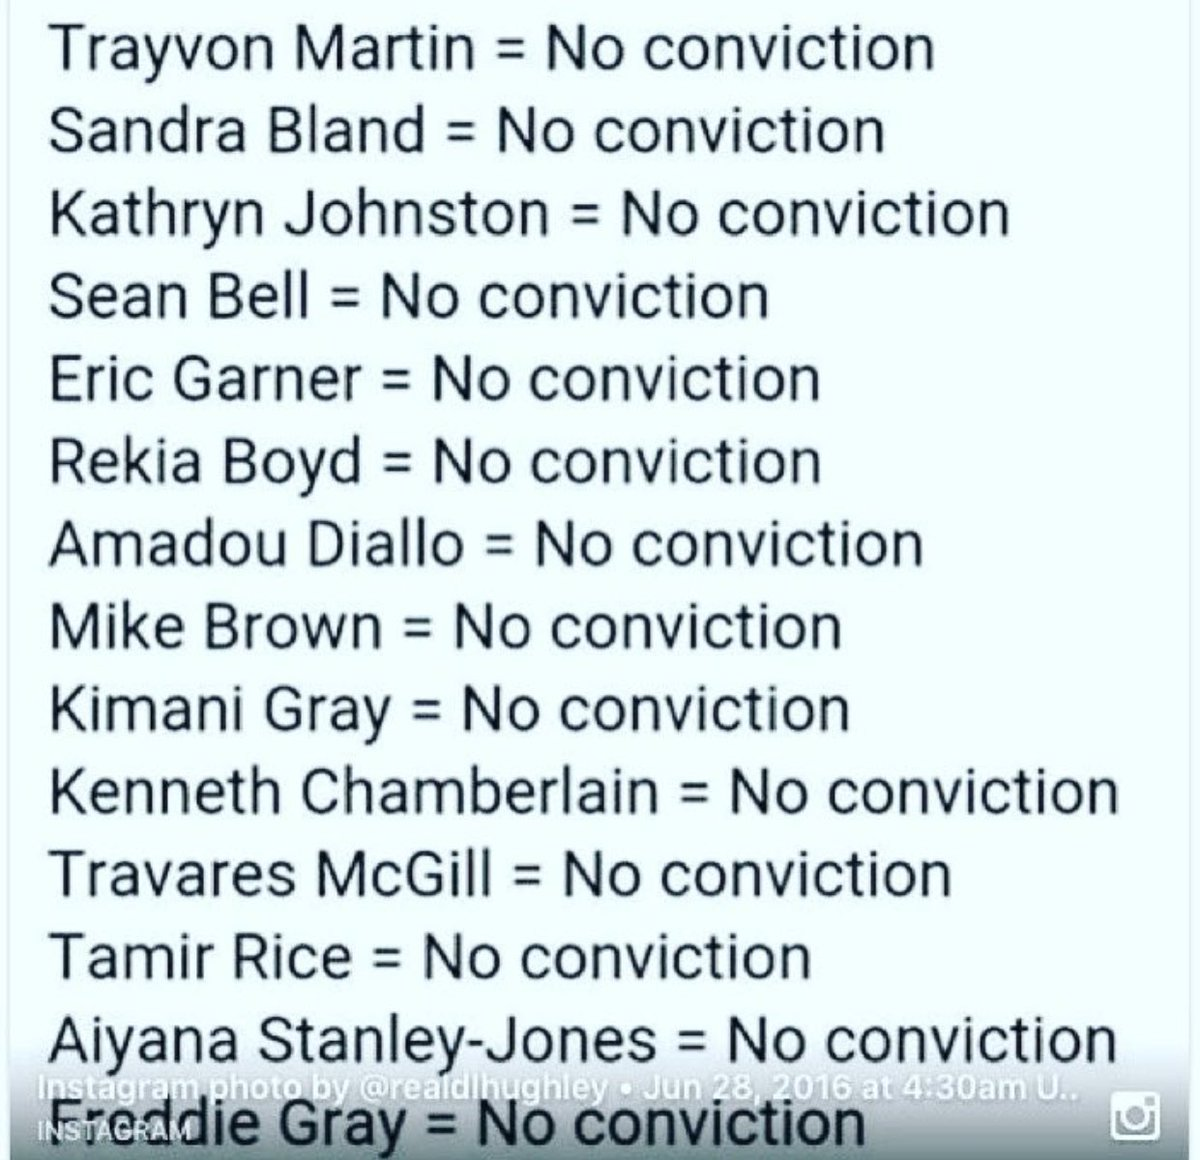 No Conviction! https://t.co/MSkrFKhK14